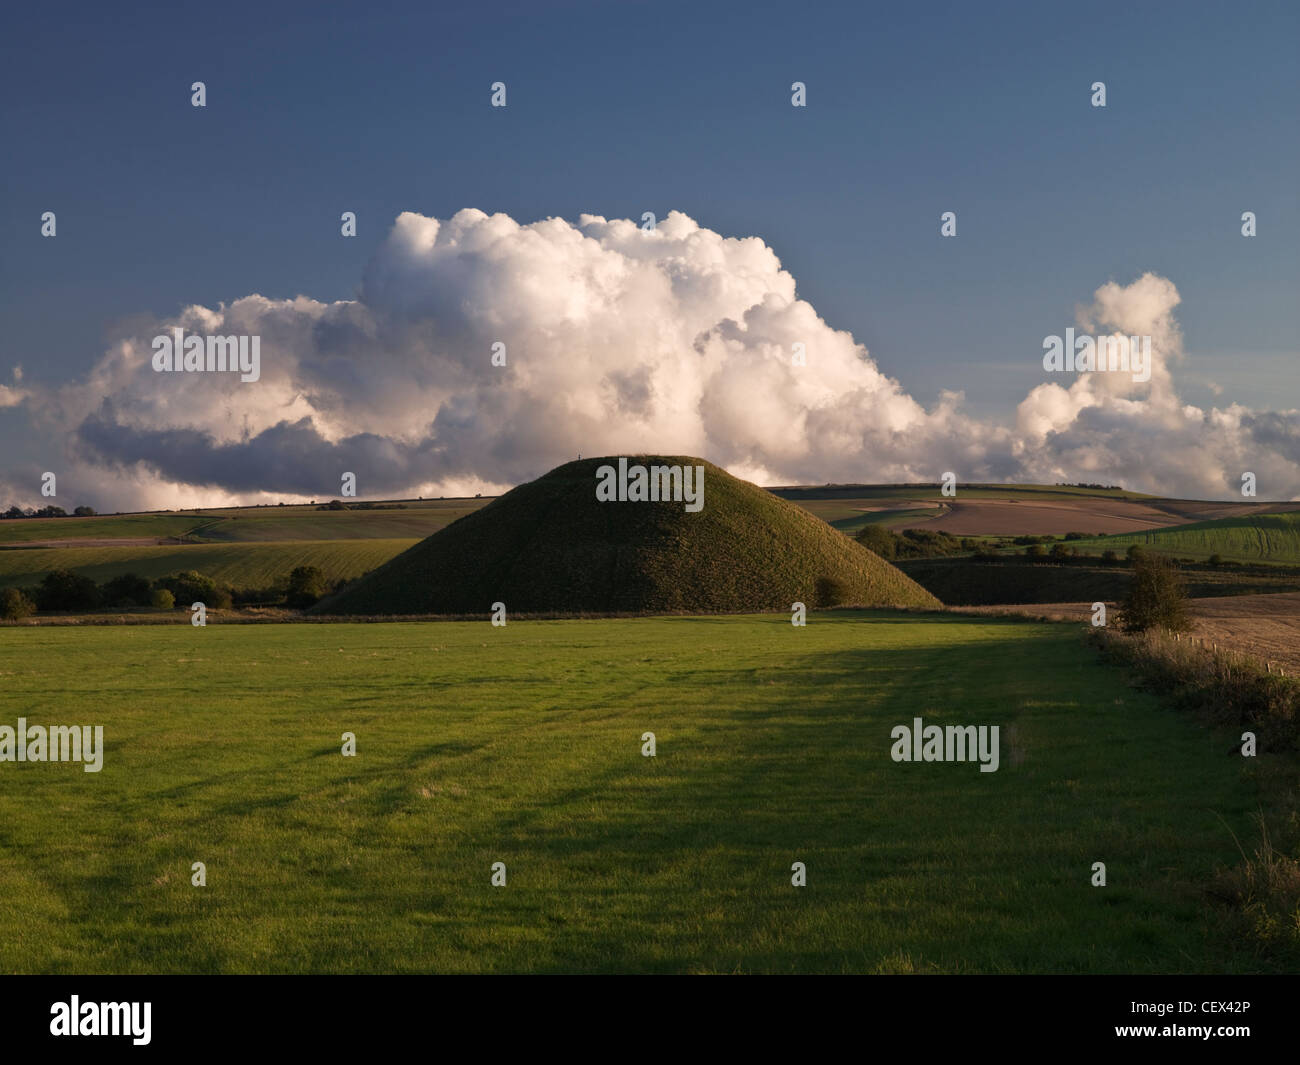 View of Silbury Hill, the tallest prehistoric human-made mound in Europe, against a bank of cloud on a clear evening. - Stock Image